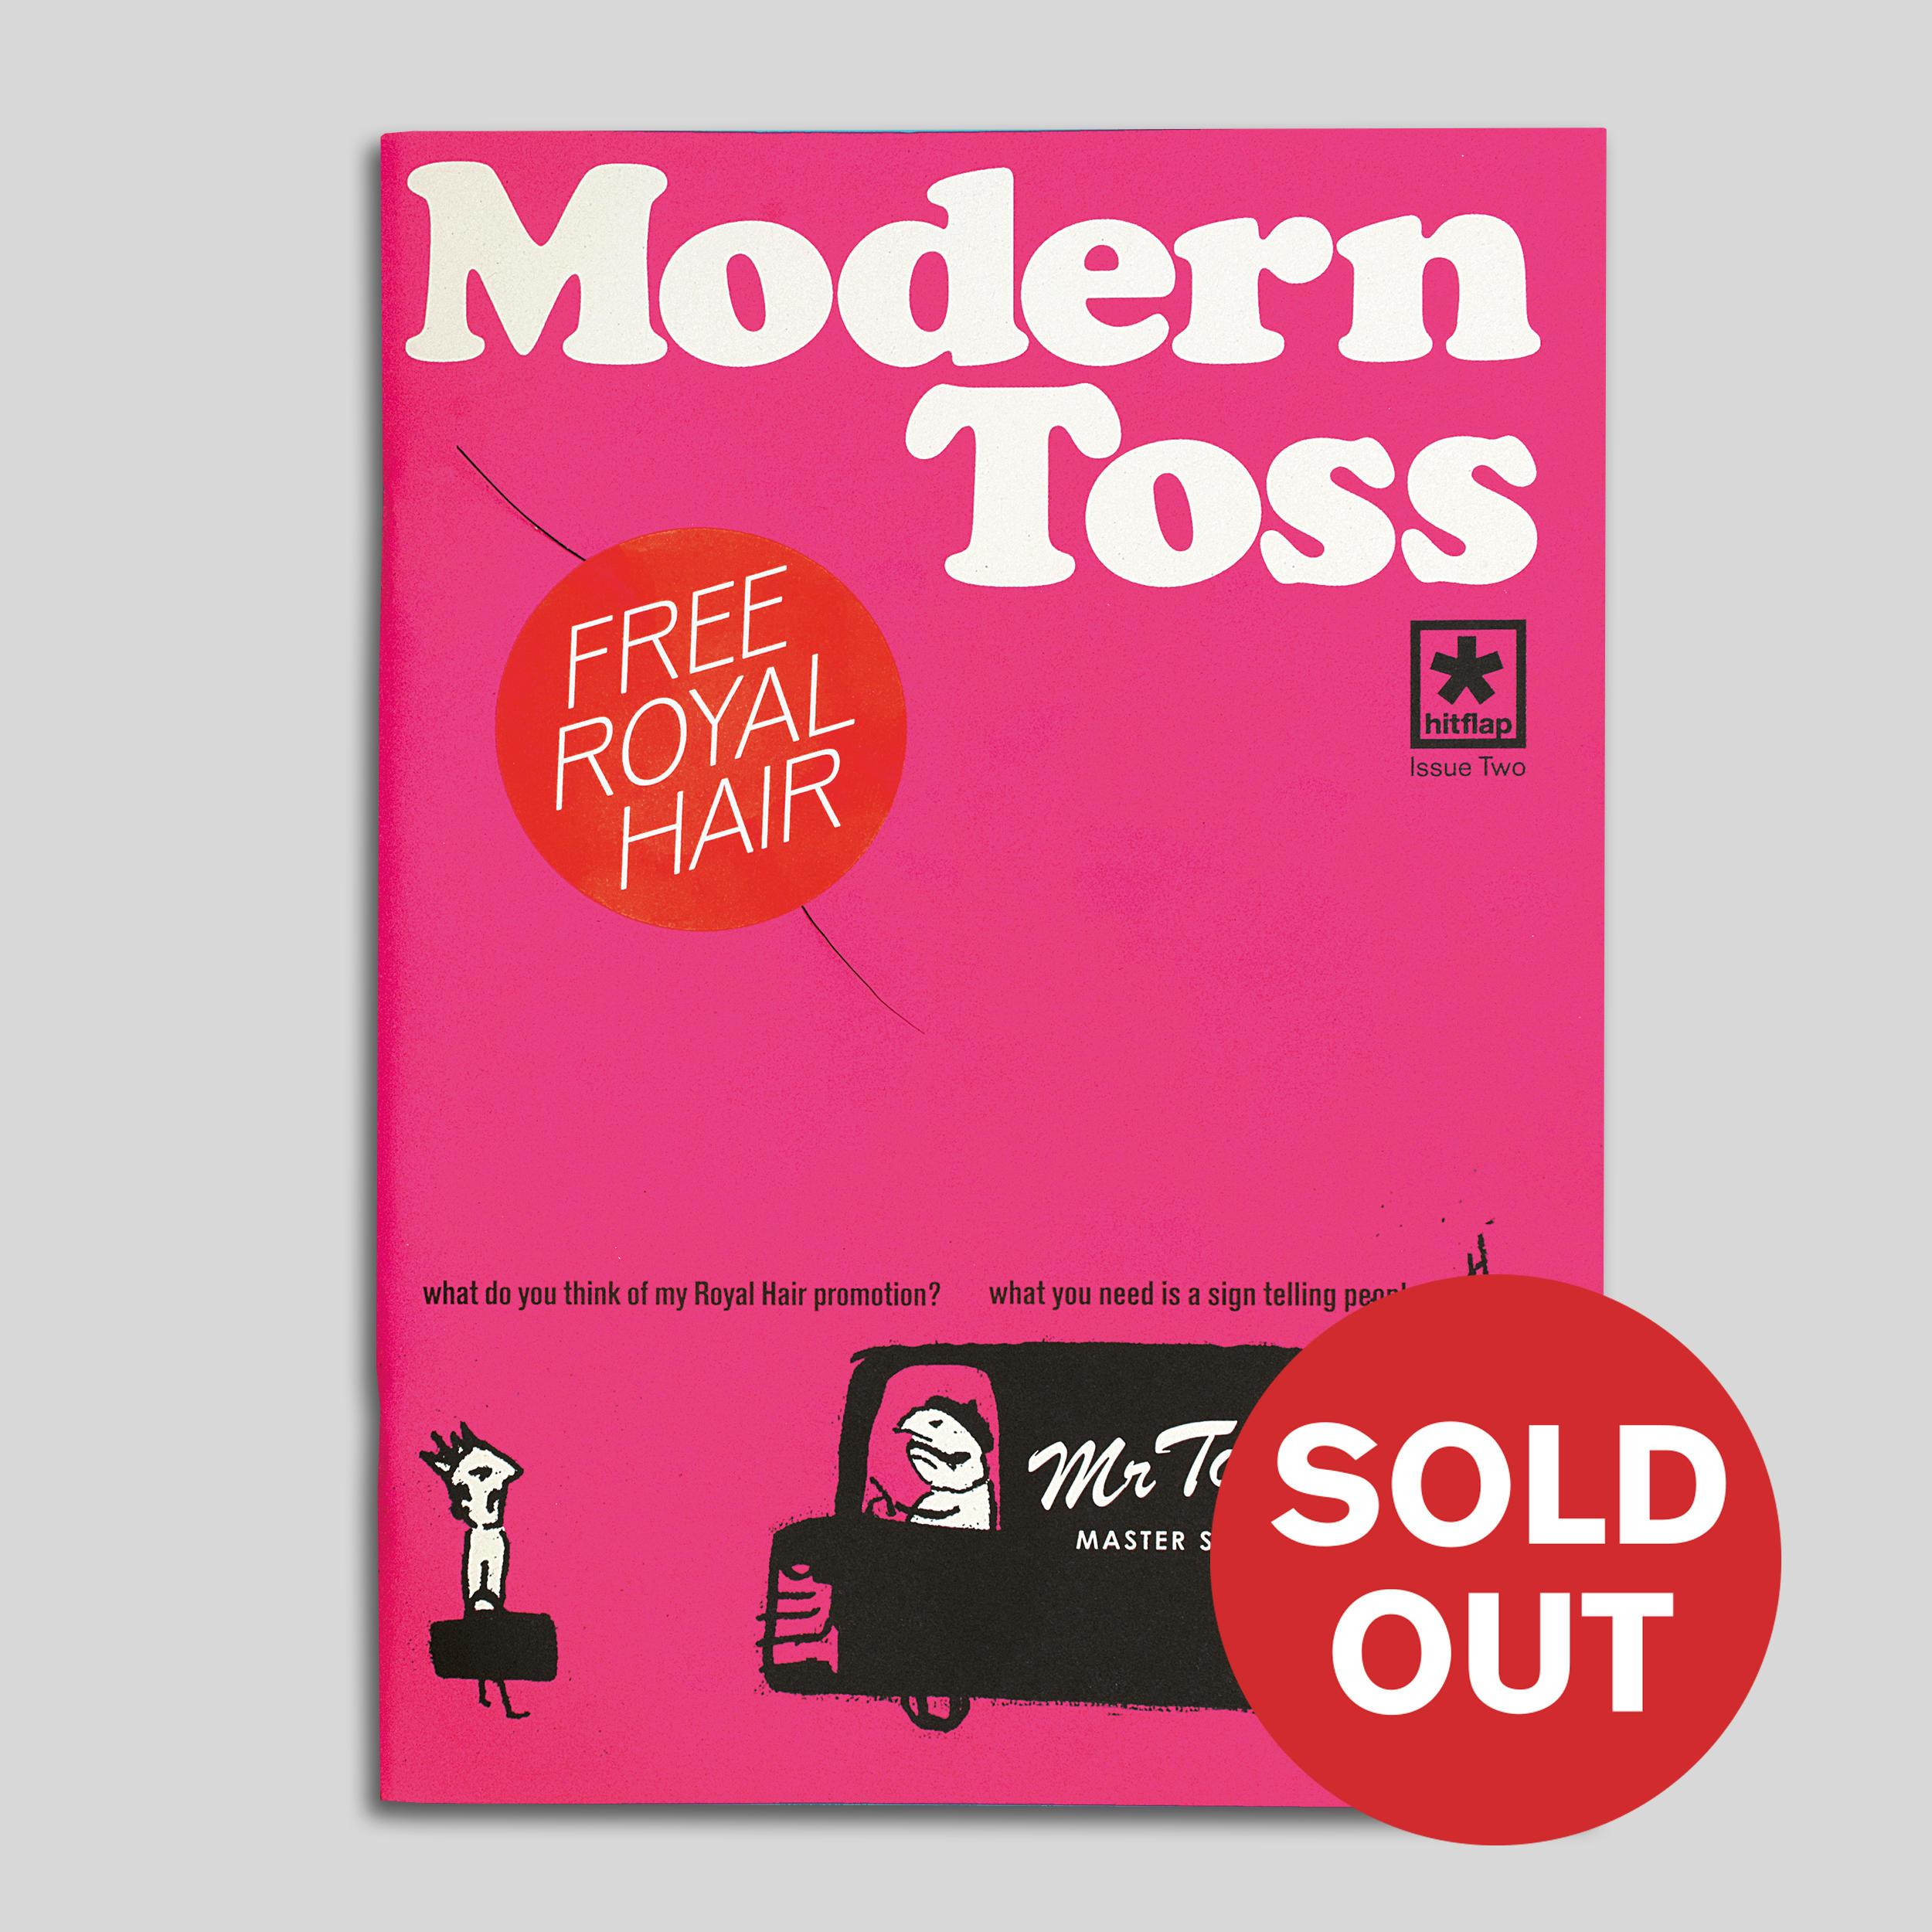 Modern Toss Comic Issue 2